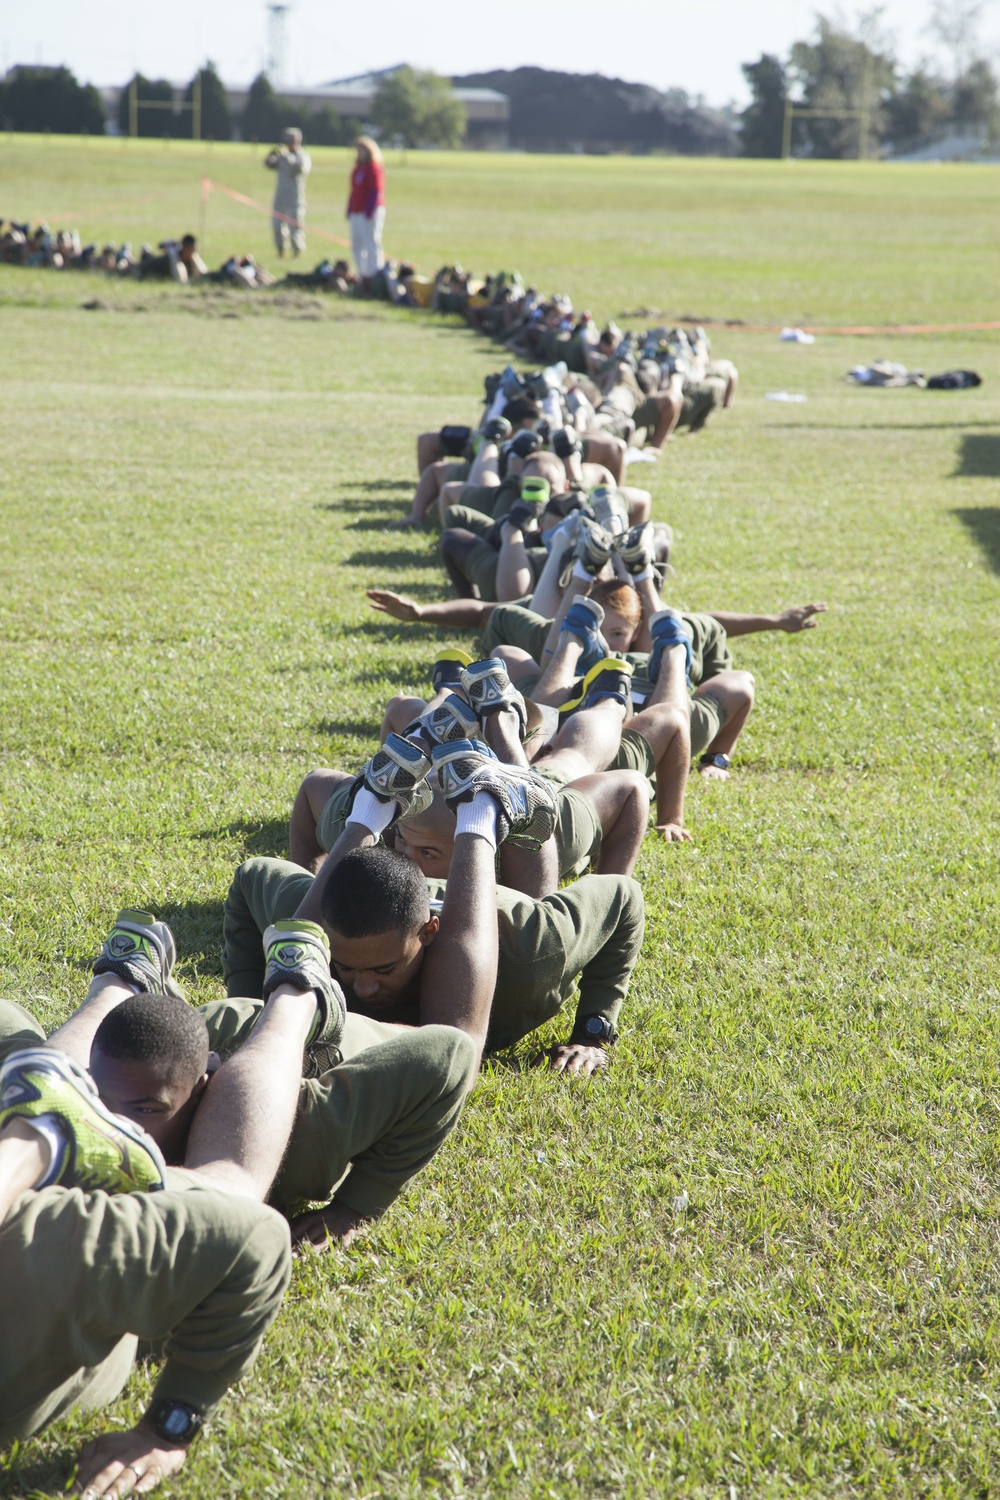 Marines, sailors attempt to set Guinness world record